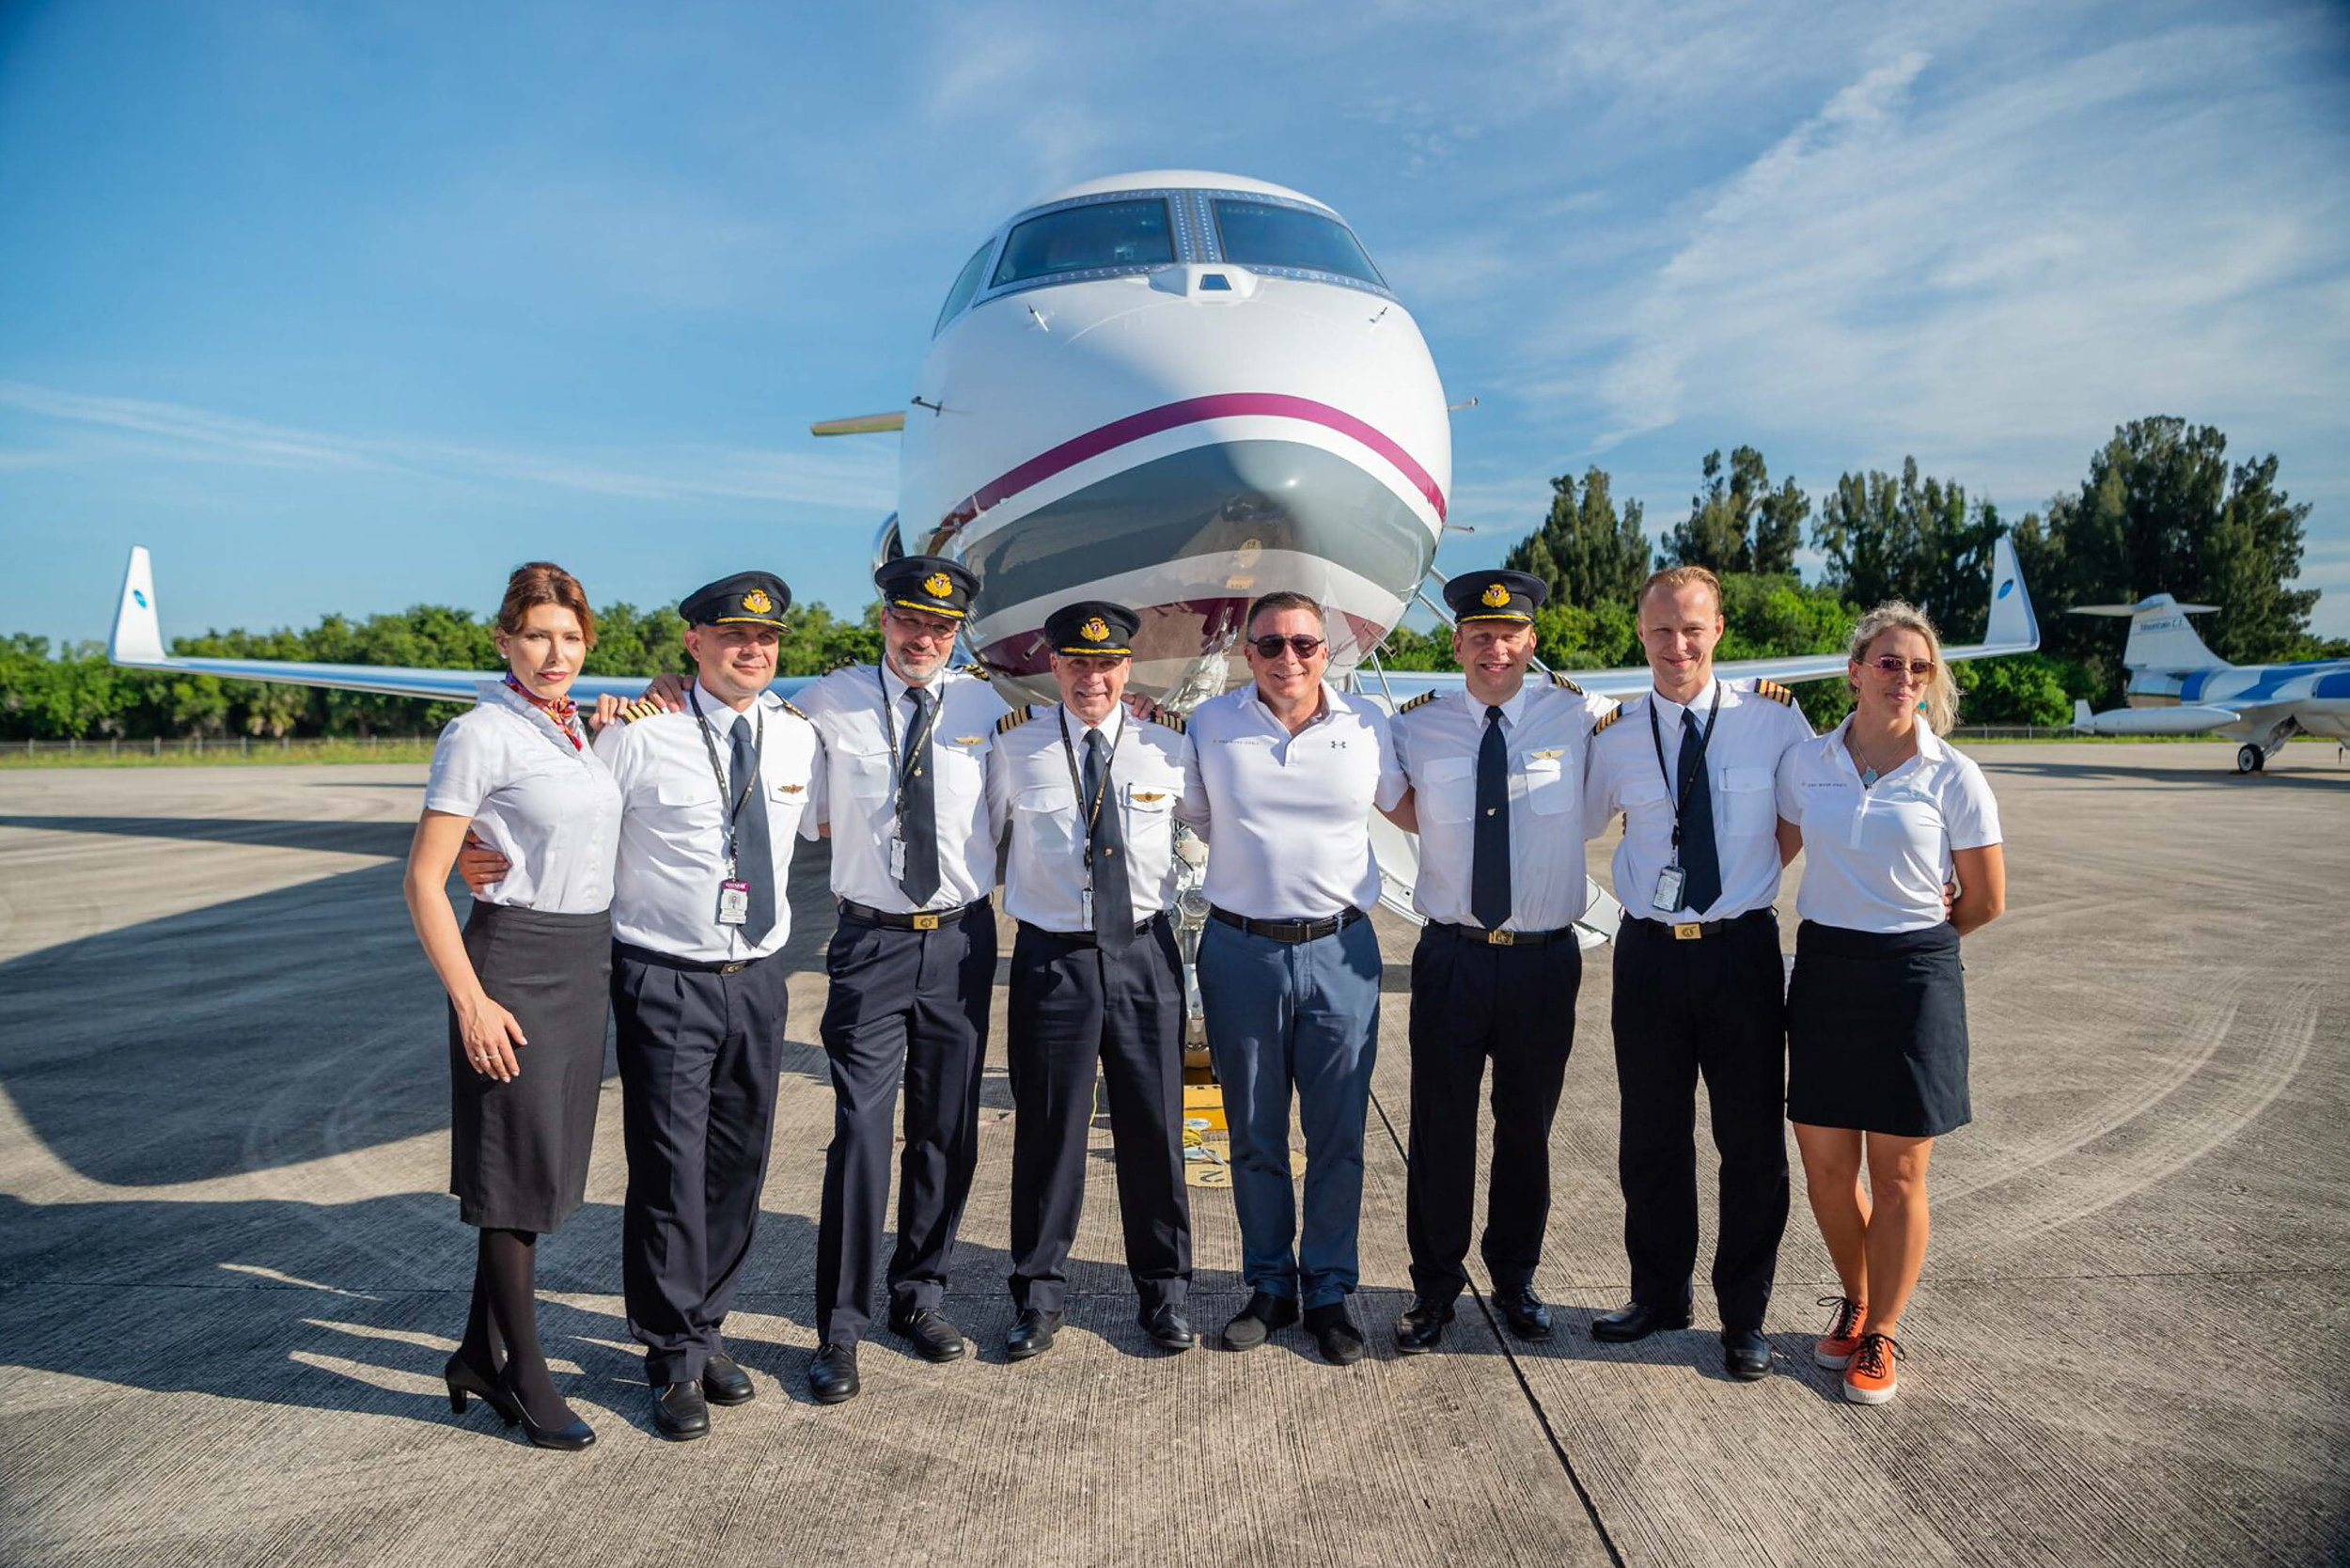 The Crew from left to right: Magdalena Starowicz, Flight Attendant; Capt Yevgen Vasylenko, Pilot; Capt Jacob Ove Bech, Pilot; Capt Jeremy Ascough, Pilot; Col Terry Virts, Astronaut, Capt Hamish Harding Mission Director/Pilot; Benjamin Rueger, Lead Engineer